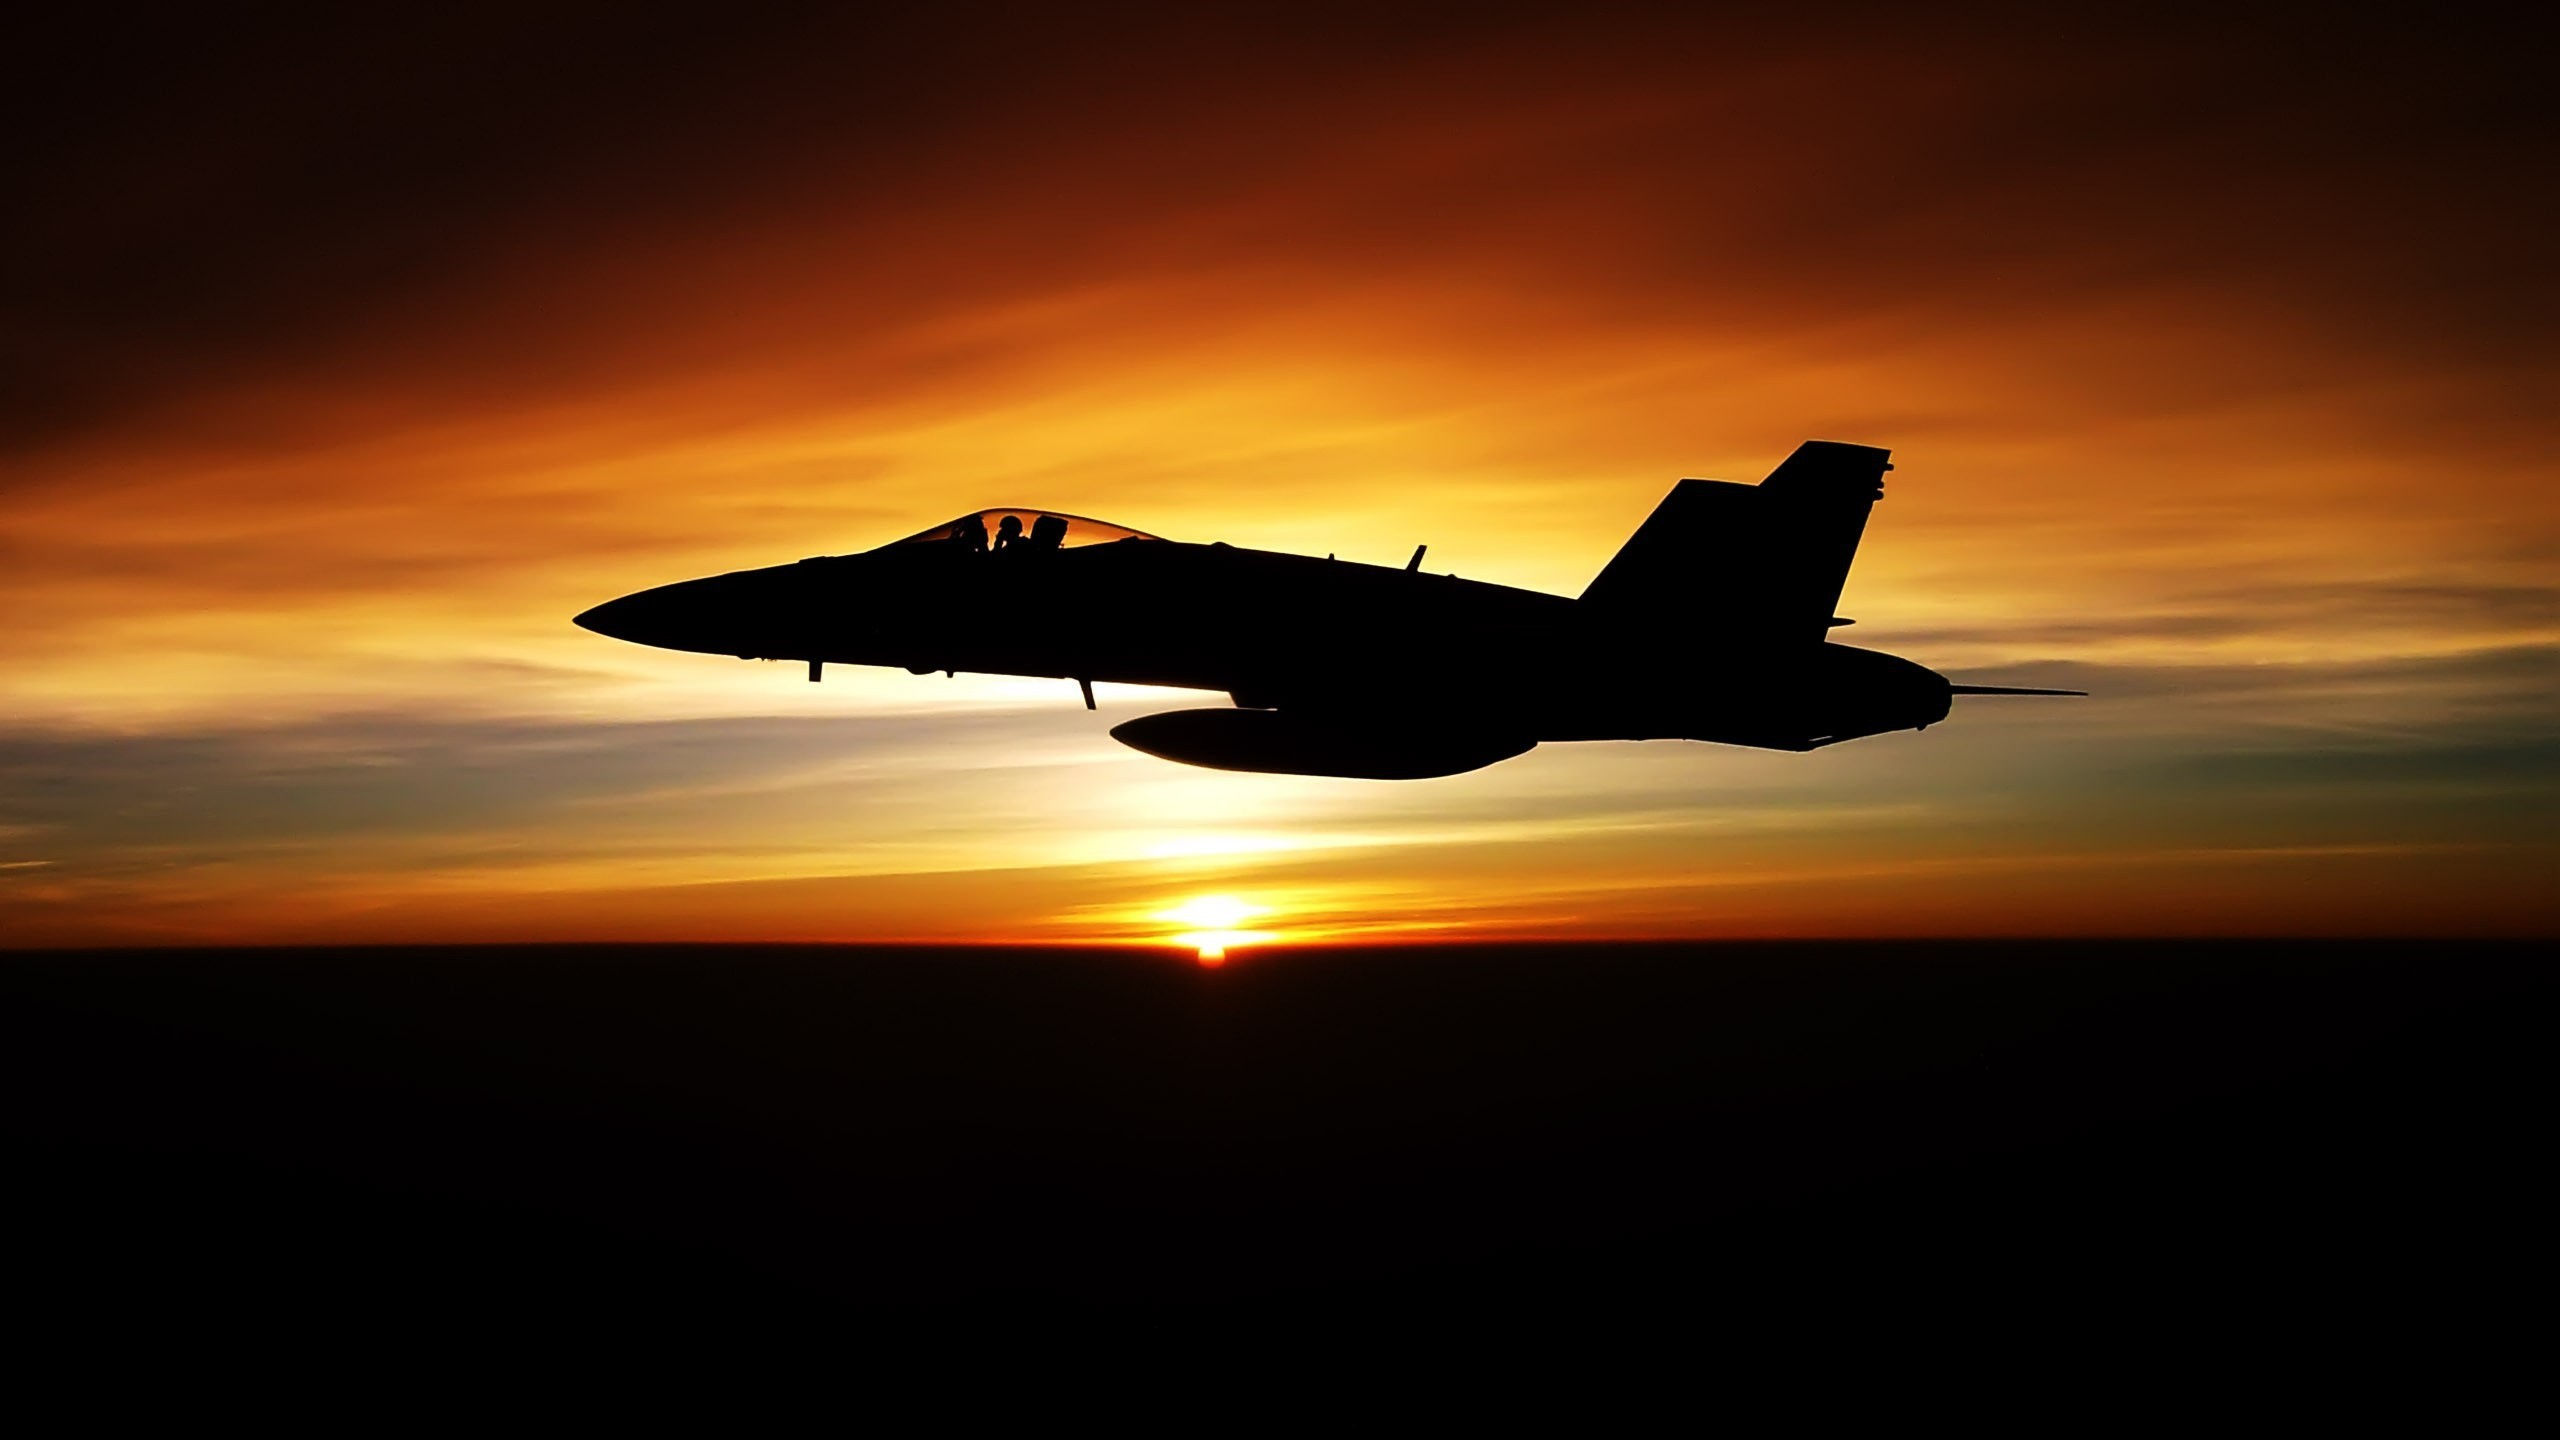 Free Military Desktop Wallpaper Bombers Fighter Jets and more